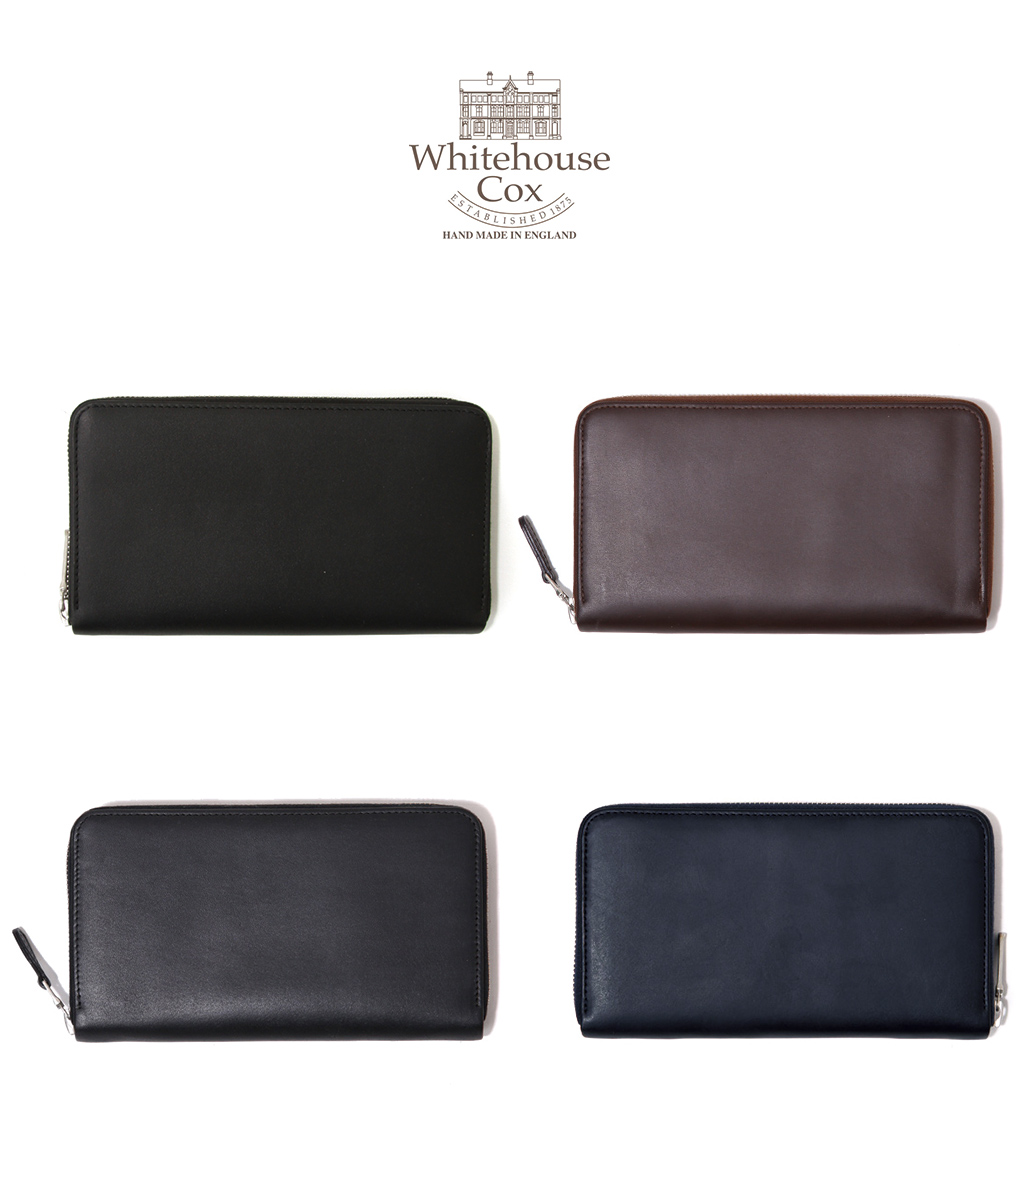 Whitehouse Cox / ホワイトハウスコックス : 【DERBY COLLECTION】LONG ZIP WALLET / 全4色 : ロングウォレット 長財布 レザー ラウンドジップ ダービーコレクション ギフトラッピング可能 : S-1760-DERBY【MUS】